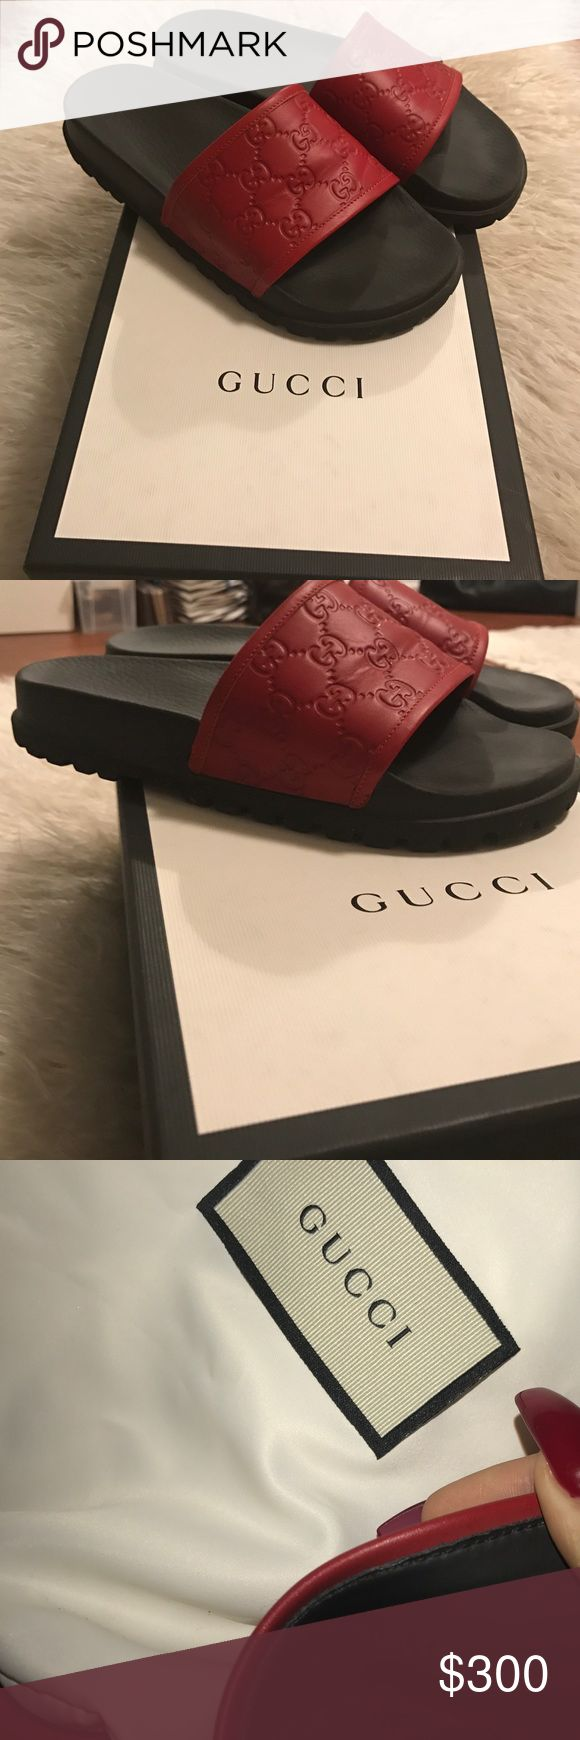 Gucci Slides 100% authentic. Worn twice, comes with box and dust bags. No offers or trades. (Men's 6) Gucci Shoes Sandals